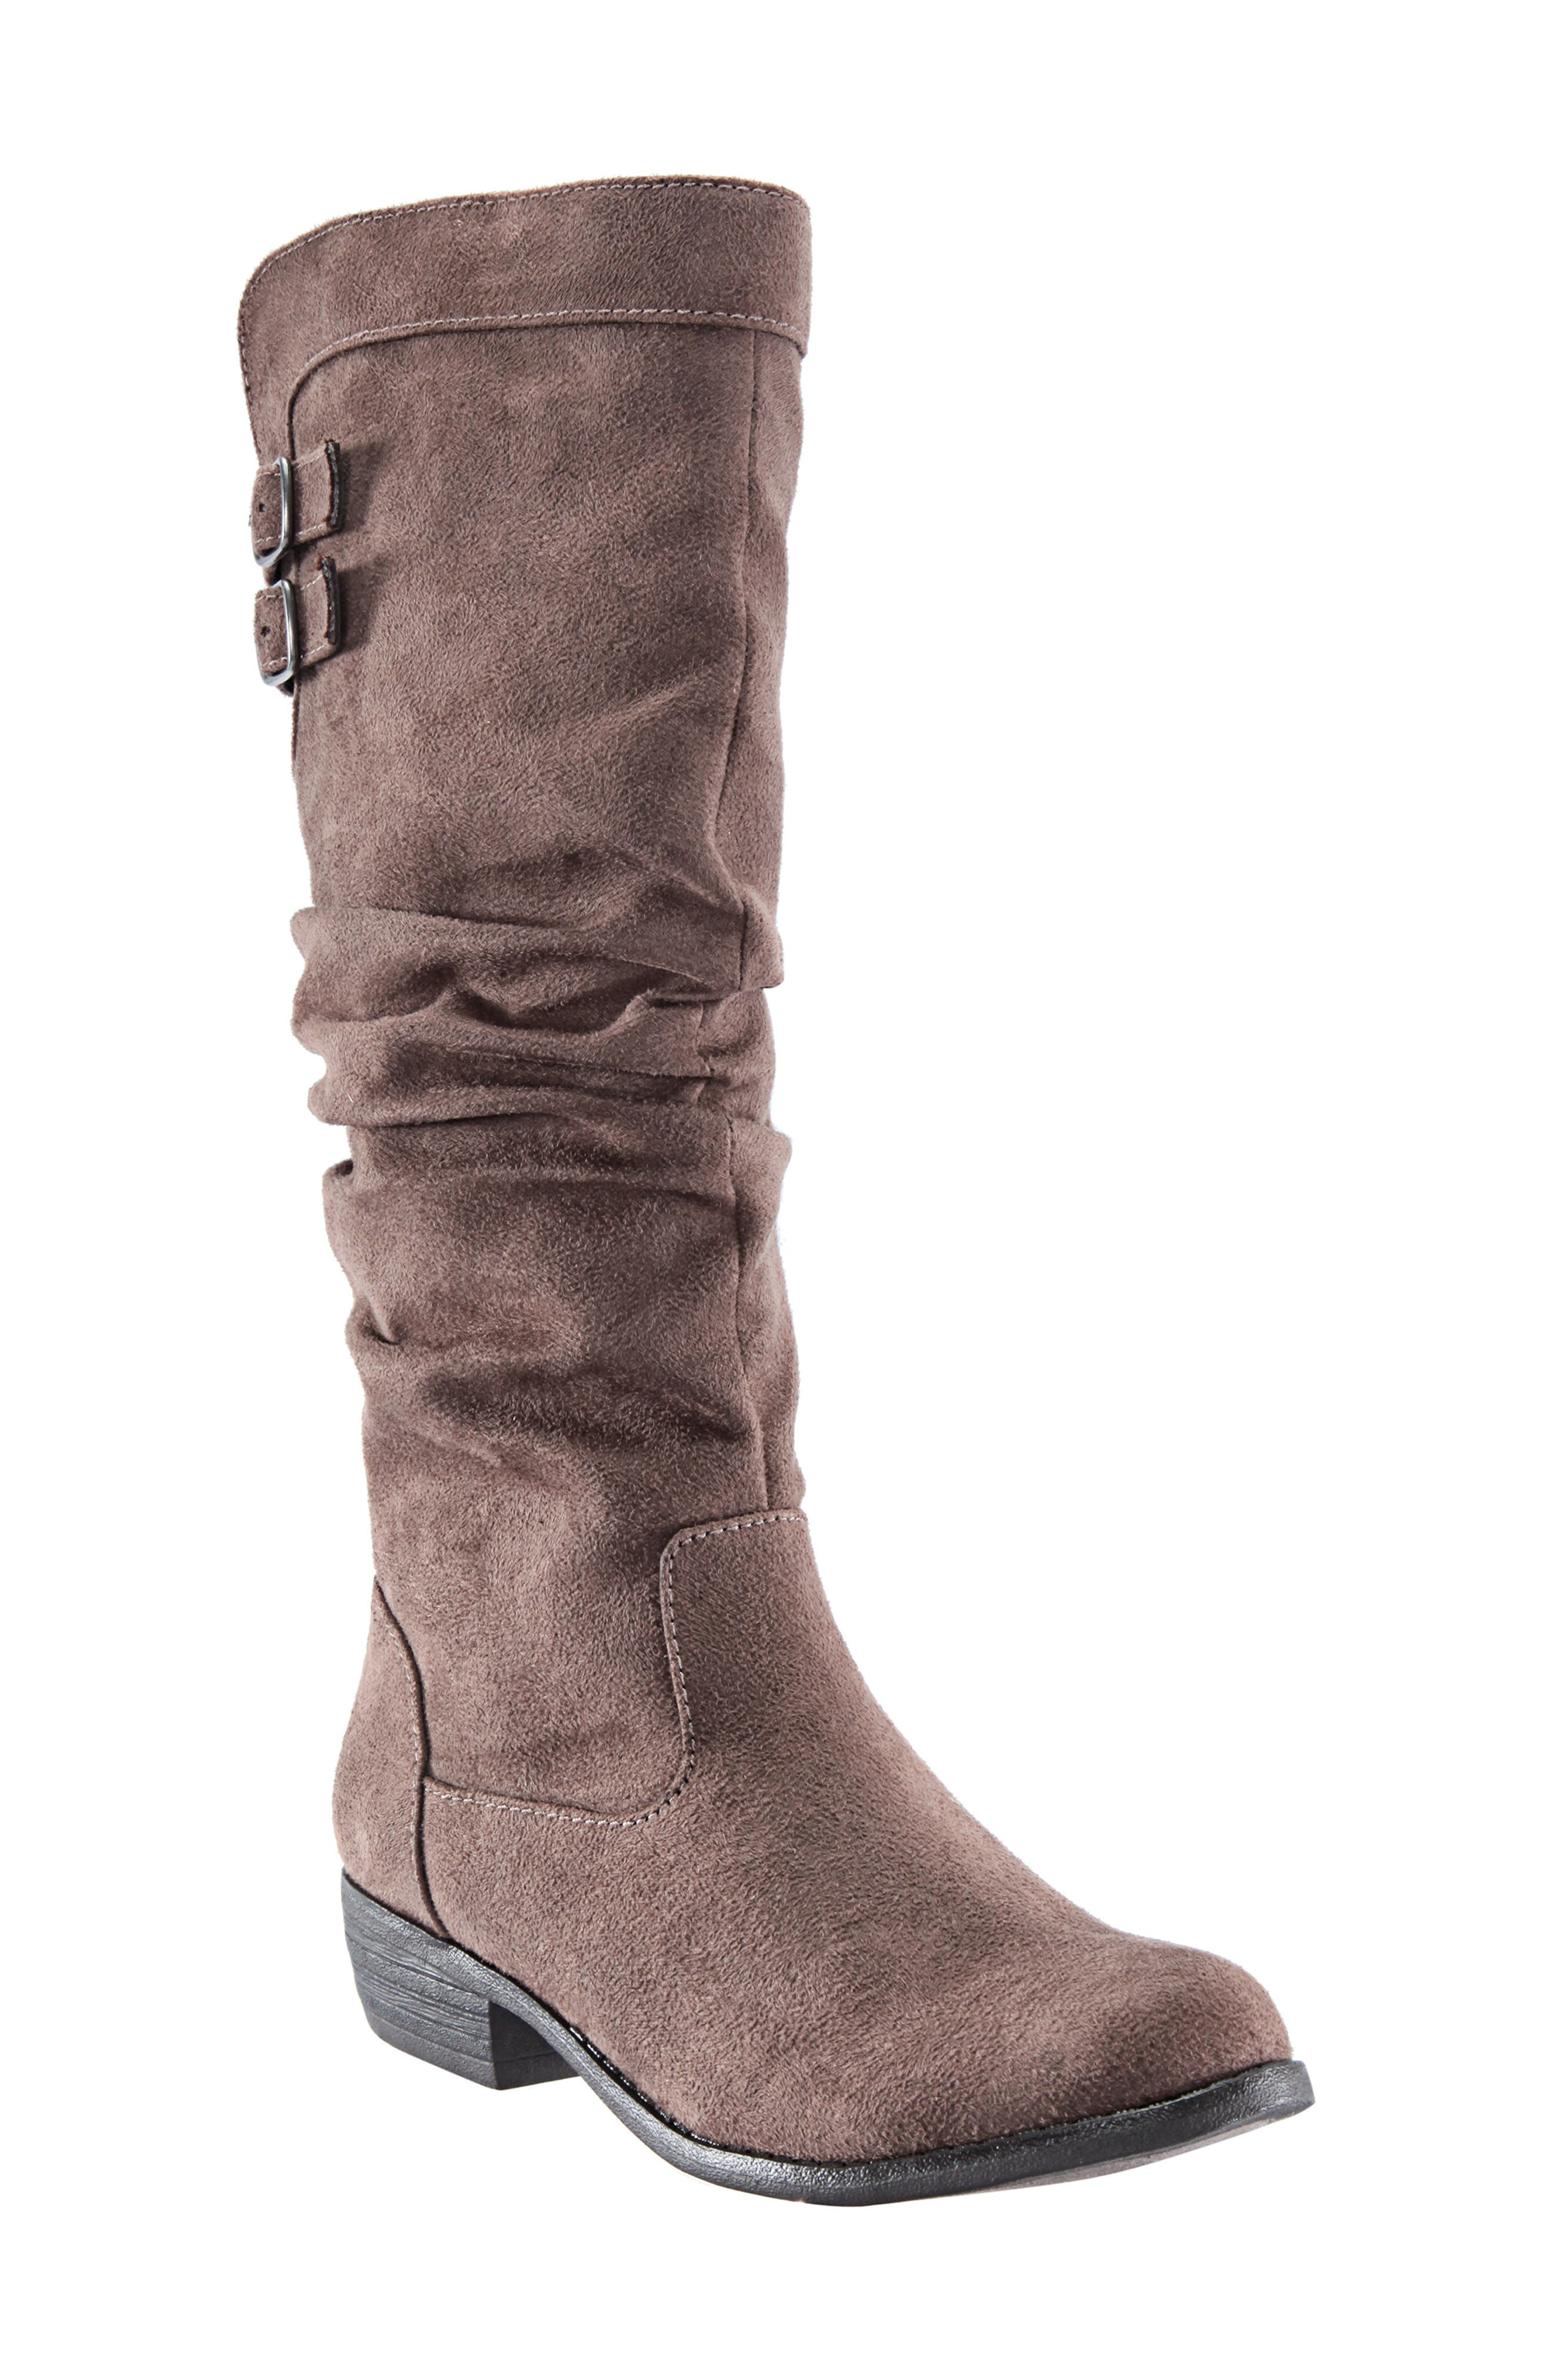 Gilda Tall Slouchy Boot,                         Main,                         color, Taupe Burnished Micro Suede